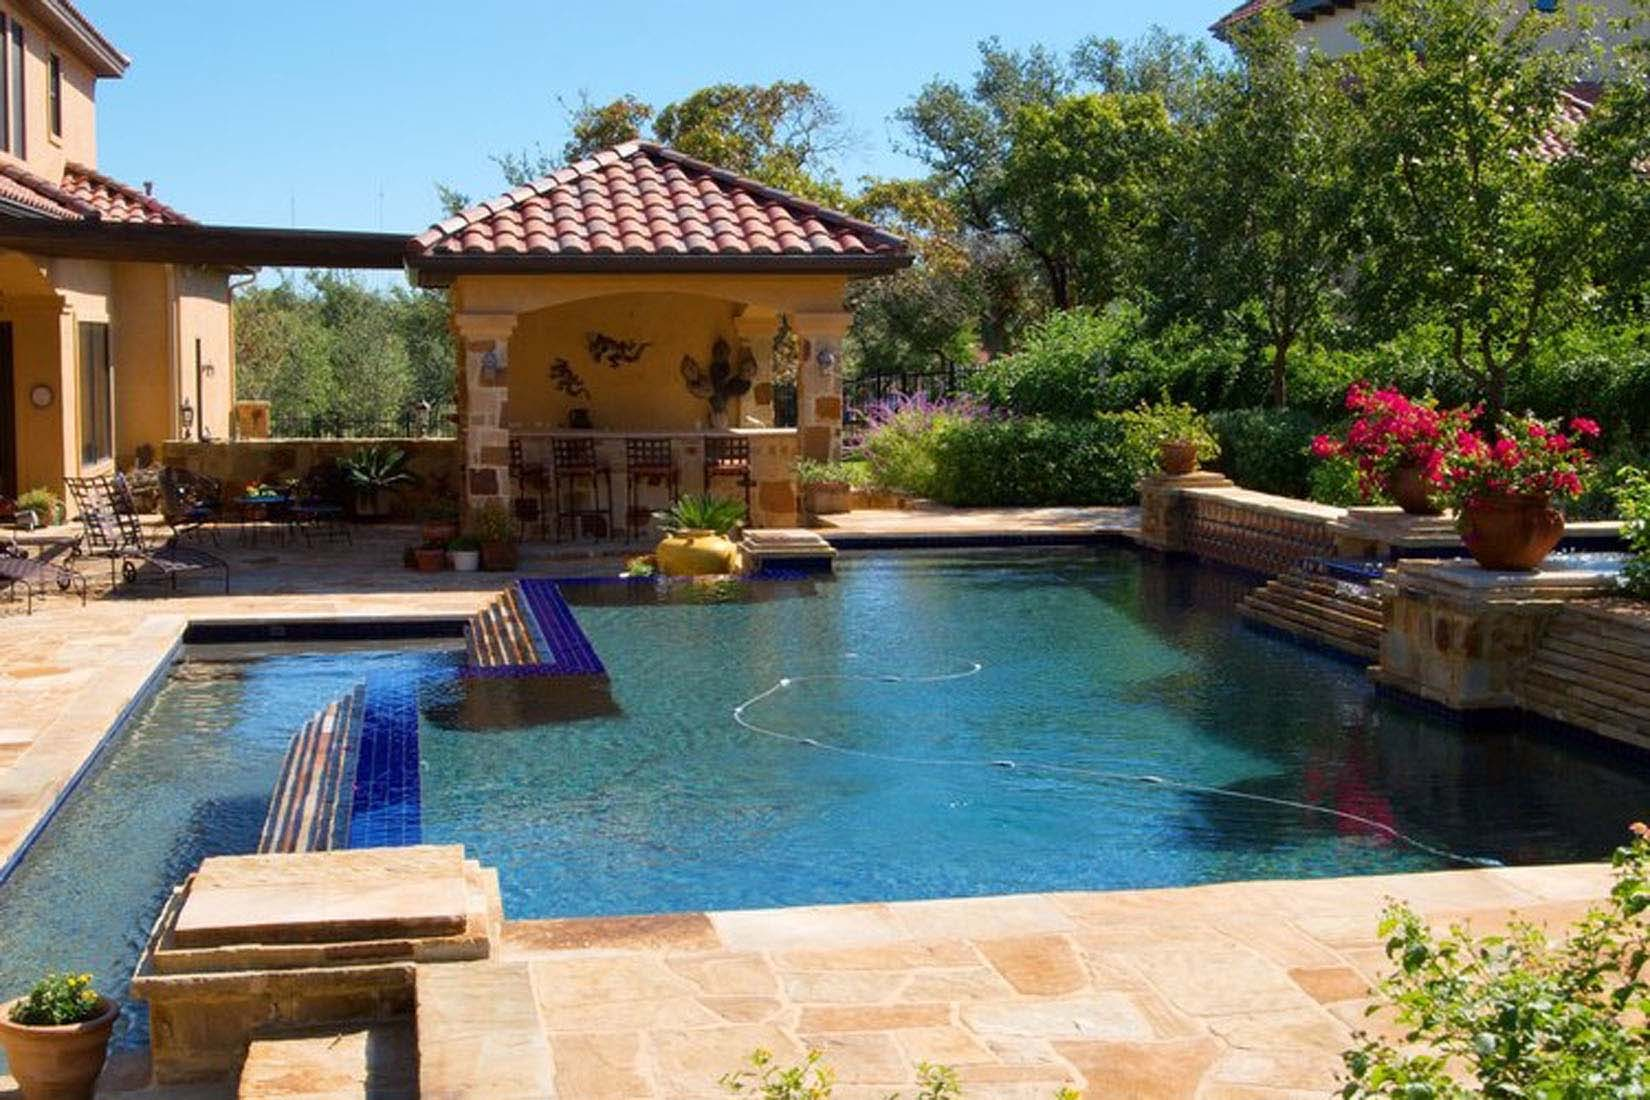 Swimming pool photo gallery how to build your own pool for Design my own pool